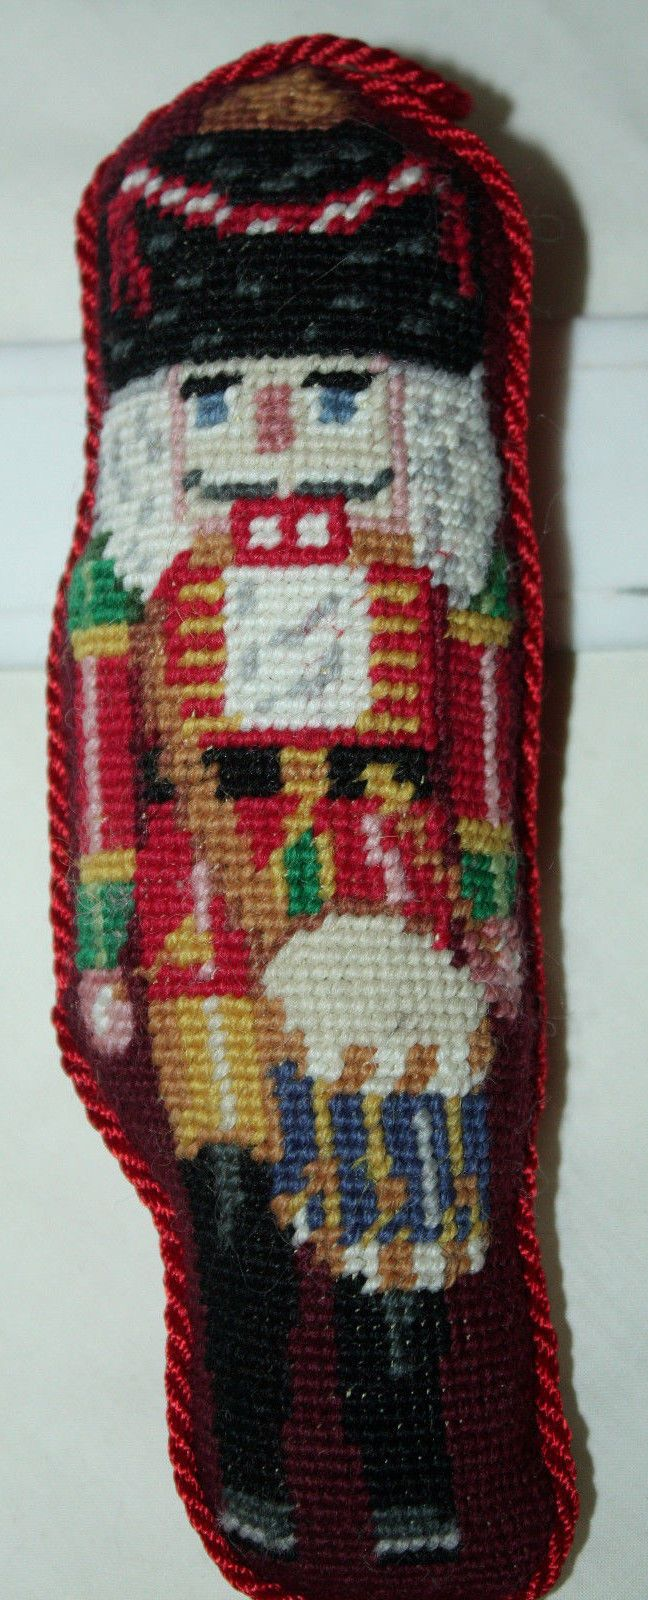 """Vintage Katha Diddel needlepoint ornament - red uniformed nutcracker drummer FOR SALE • $8.99 • See Photos! Money Back Guarantee. Vintage Katha Diddel needlepoint ornament - red uniformed nutcracker drummer - red cotton backing, red braid binding continues as a hanger at the top - 6 1/2"""" tall by 2 322765513820"""